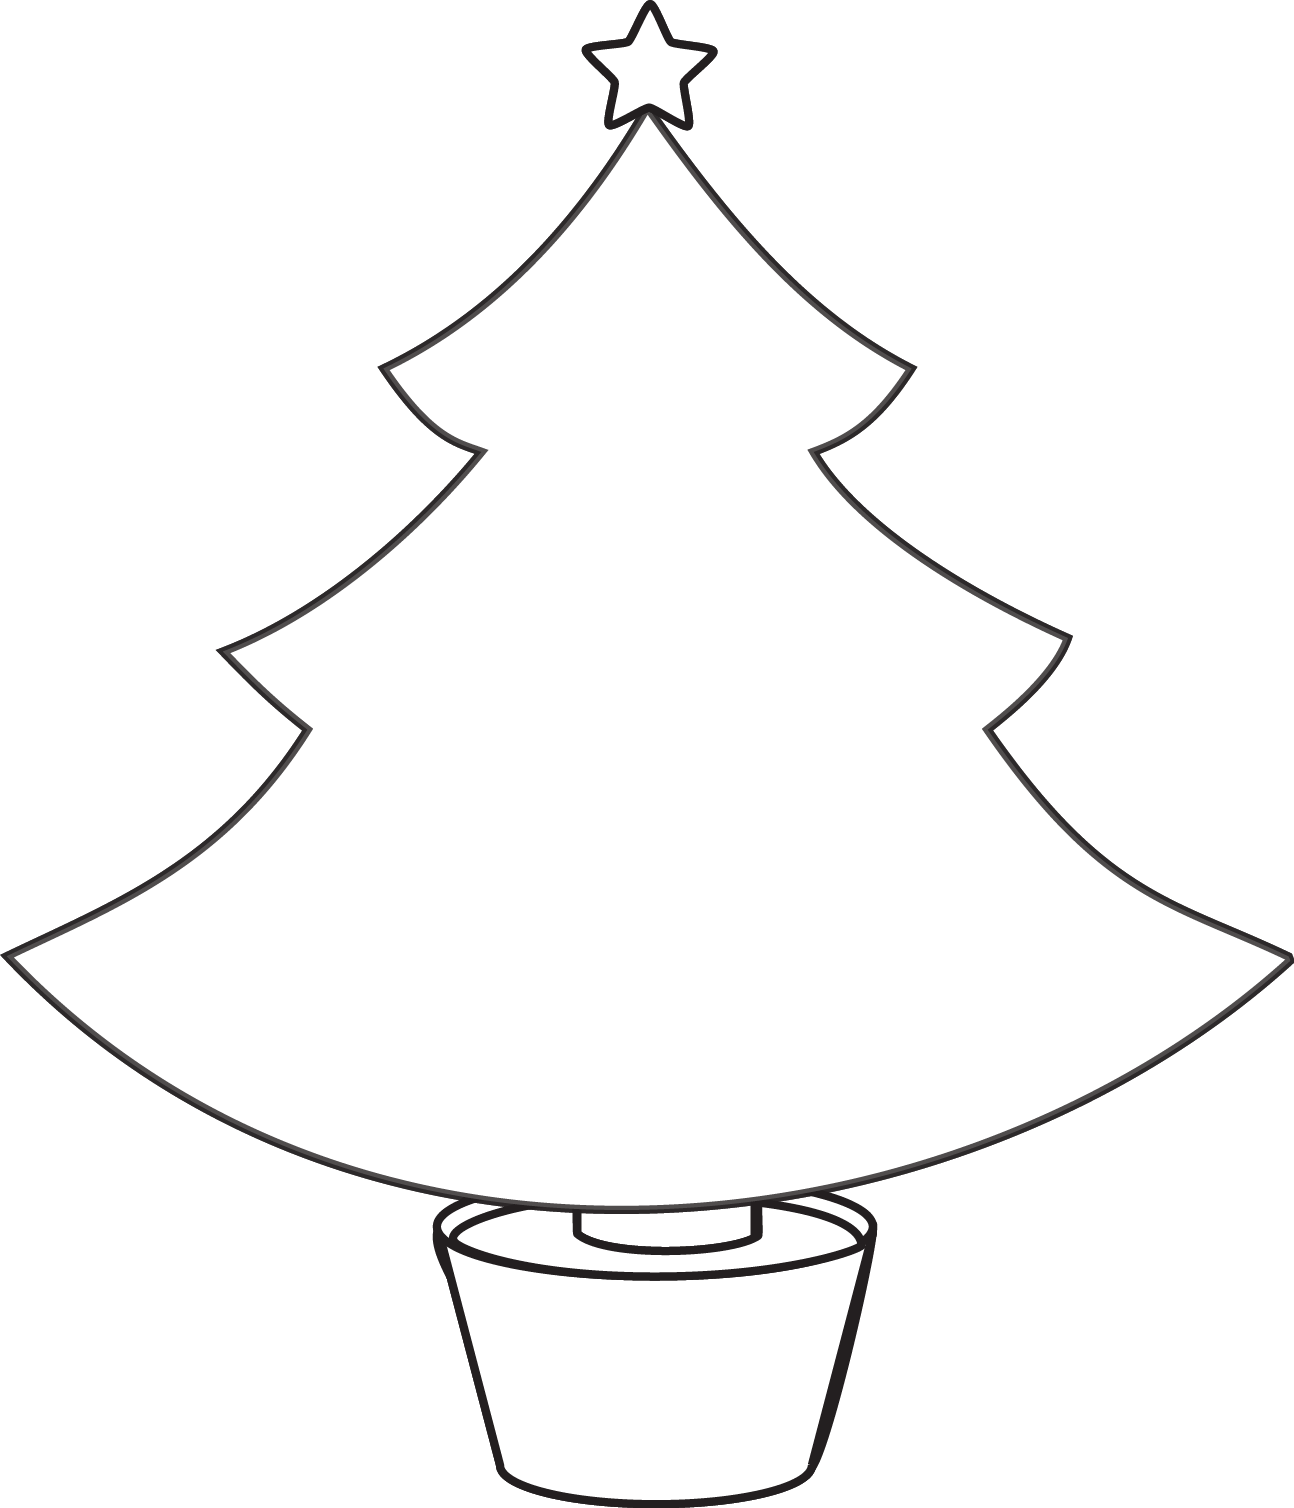 Christmas tree clipart color jpg royalty free download Free Christmas Tree Line Drawing, Download Free Clip Art, Free Clip ... jpg royalty free download